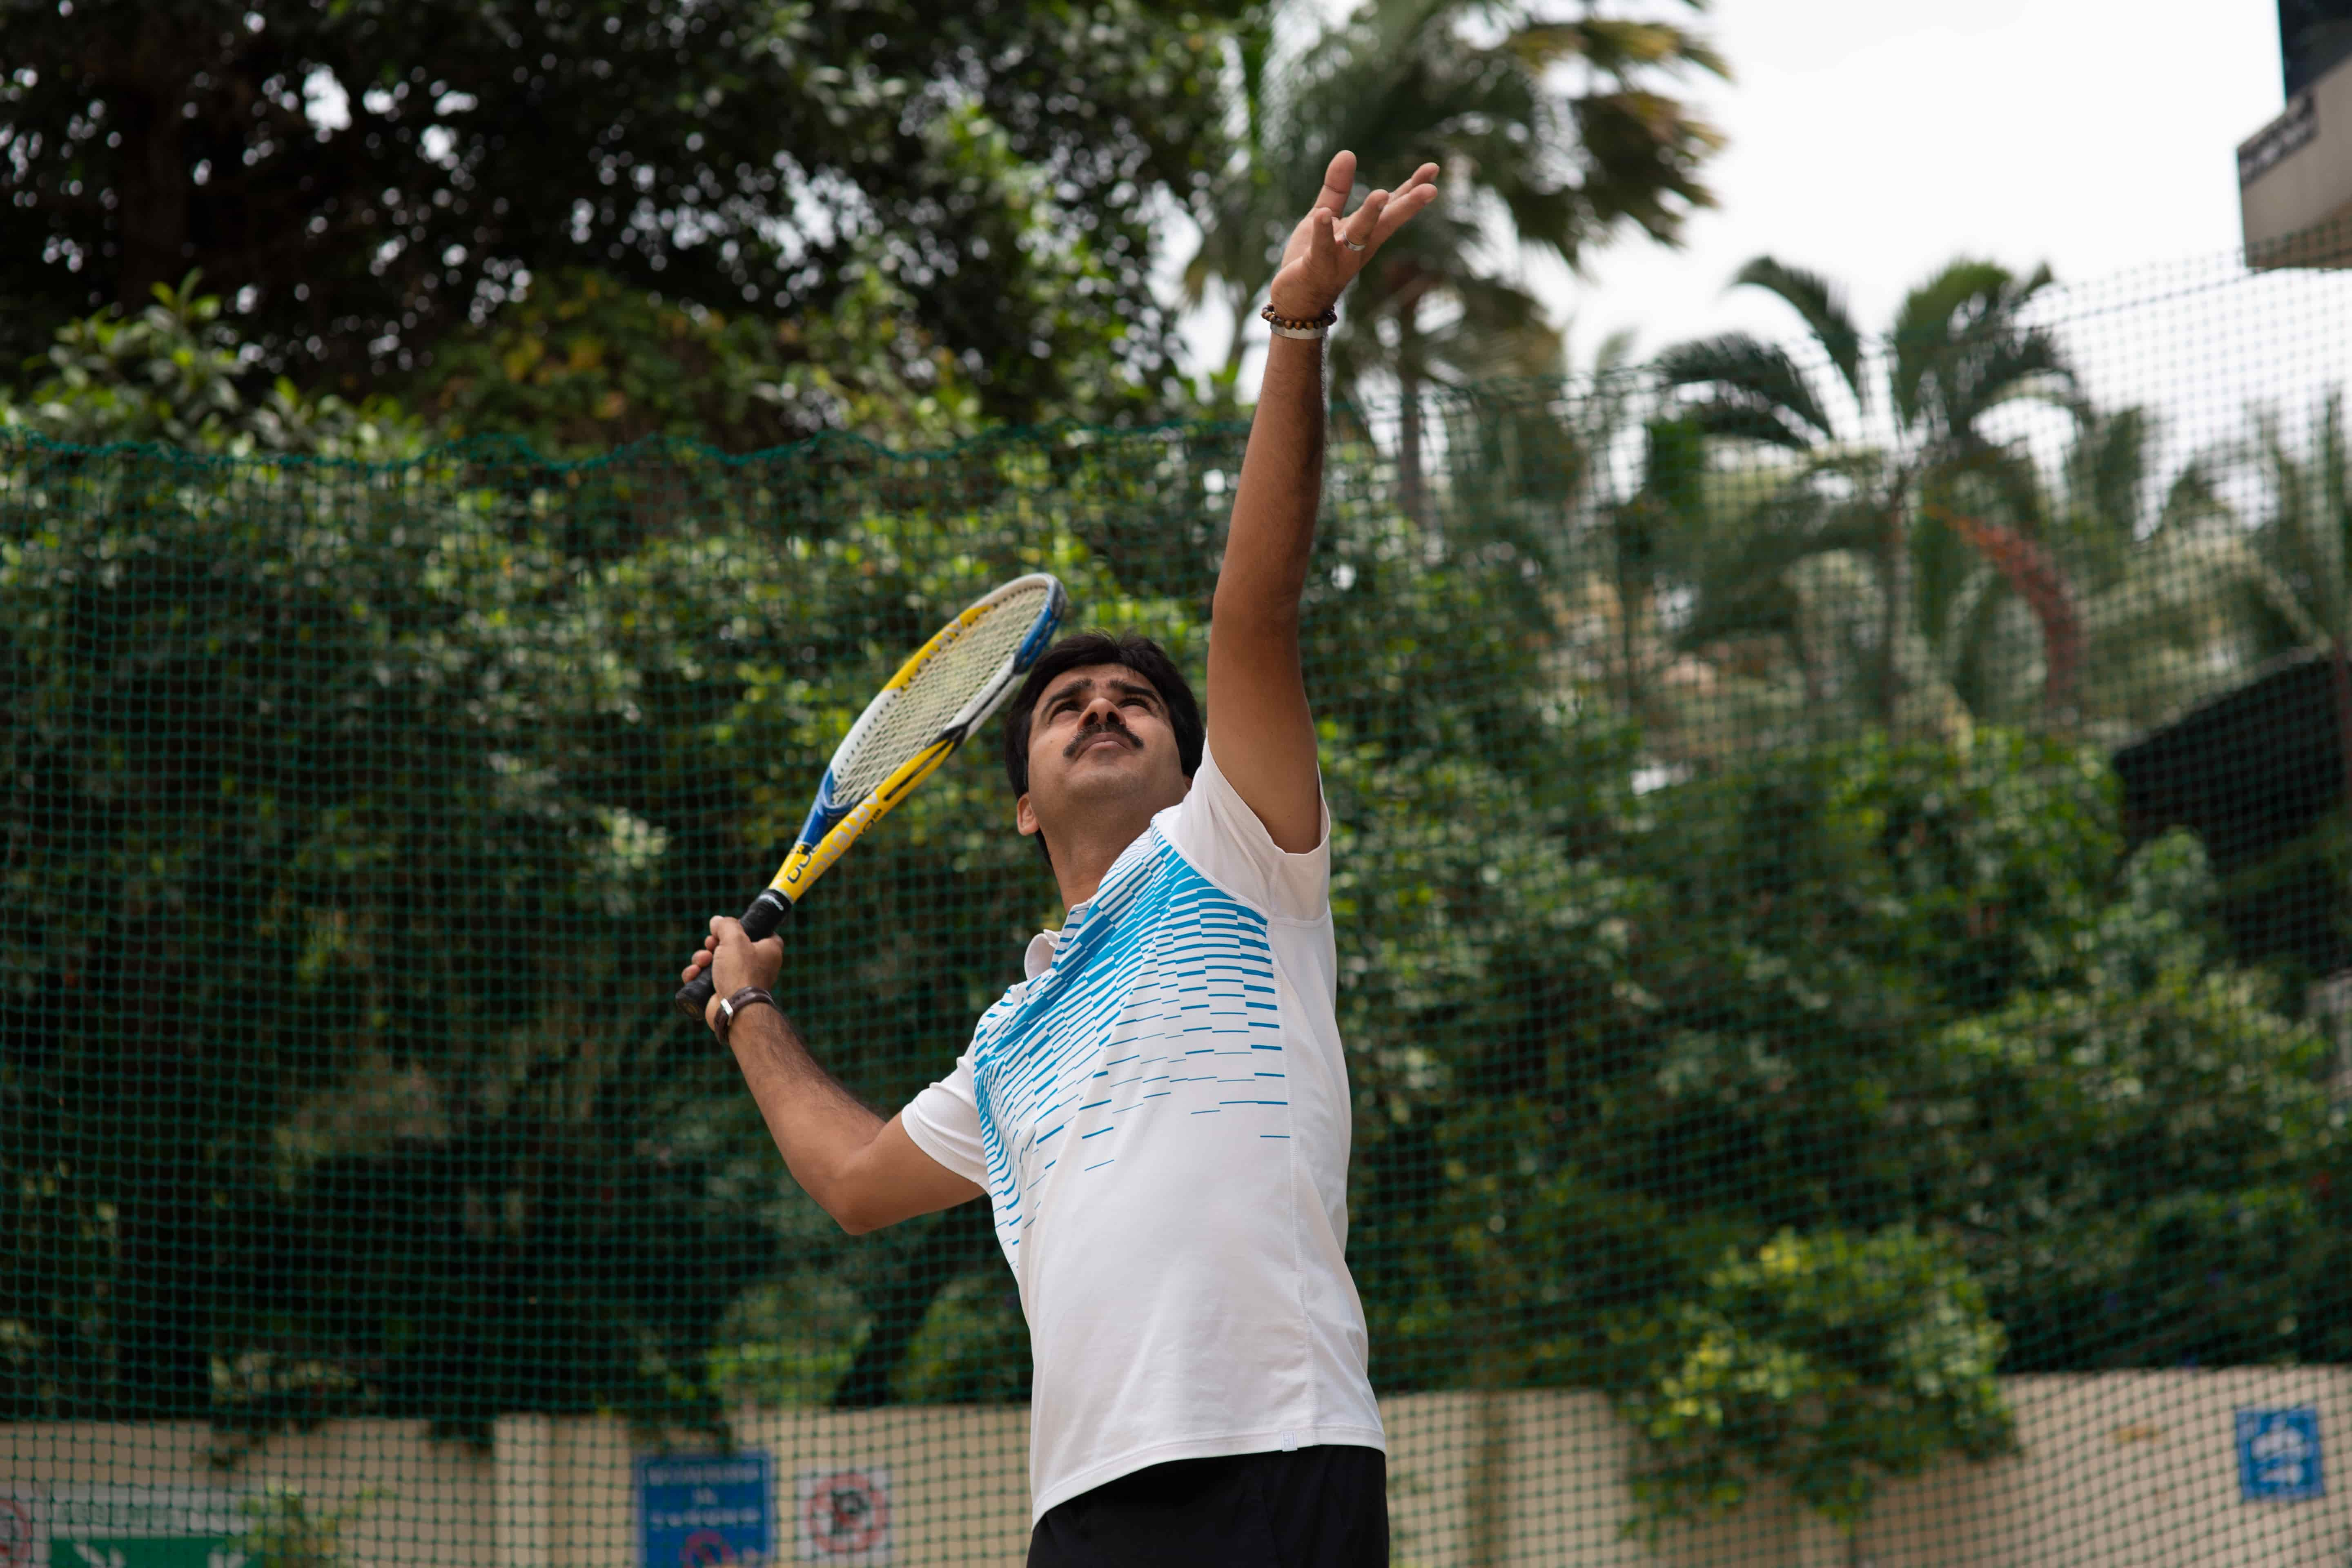 Become a Master of the Tennis Volley